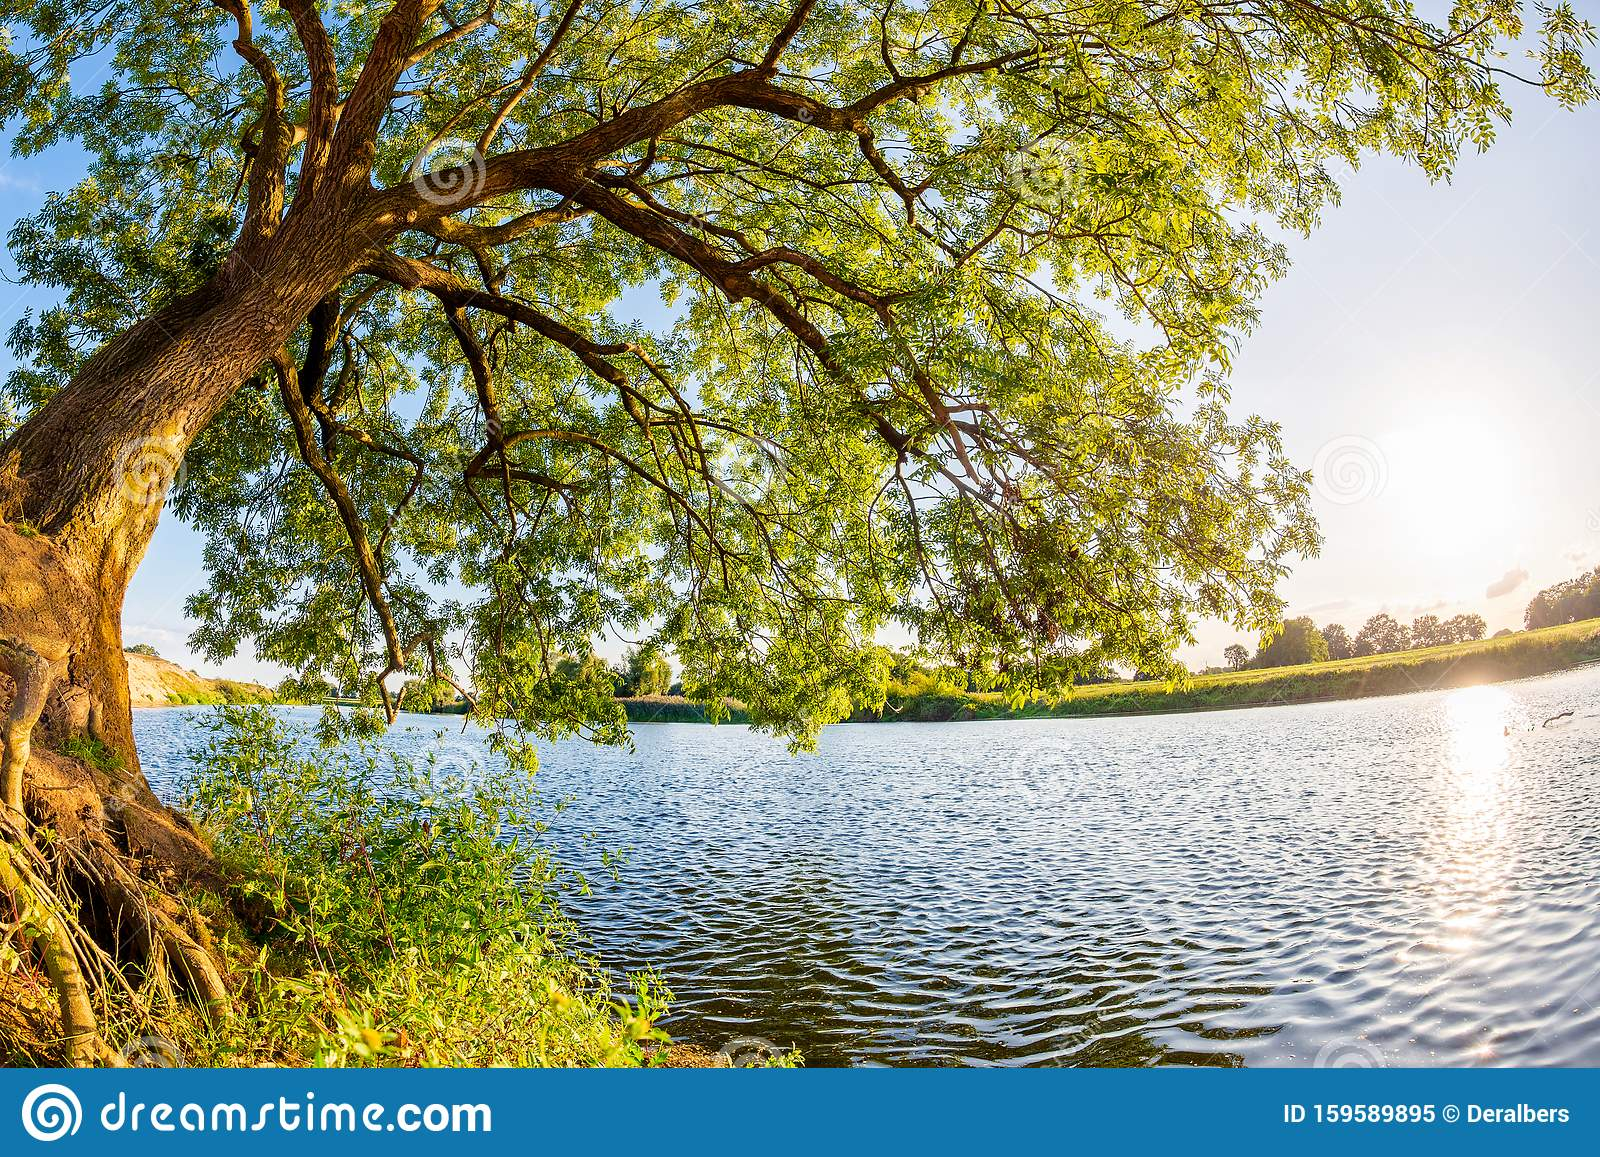 Big, Old Tree With River And Bright Sun In The Background Stock Image -  Image of beauty, land: 159589895